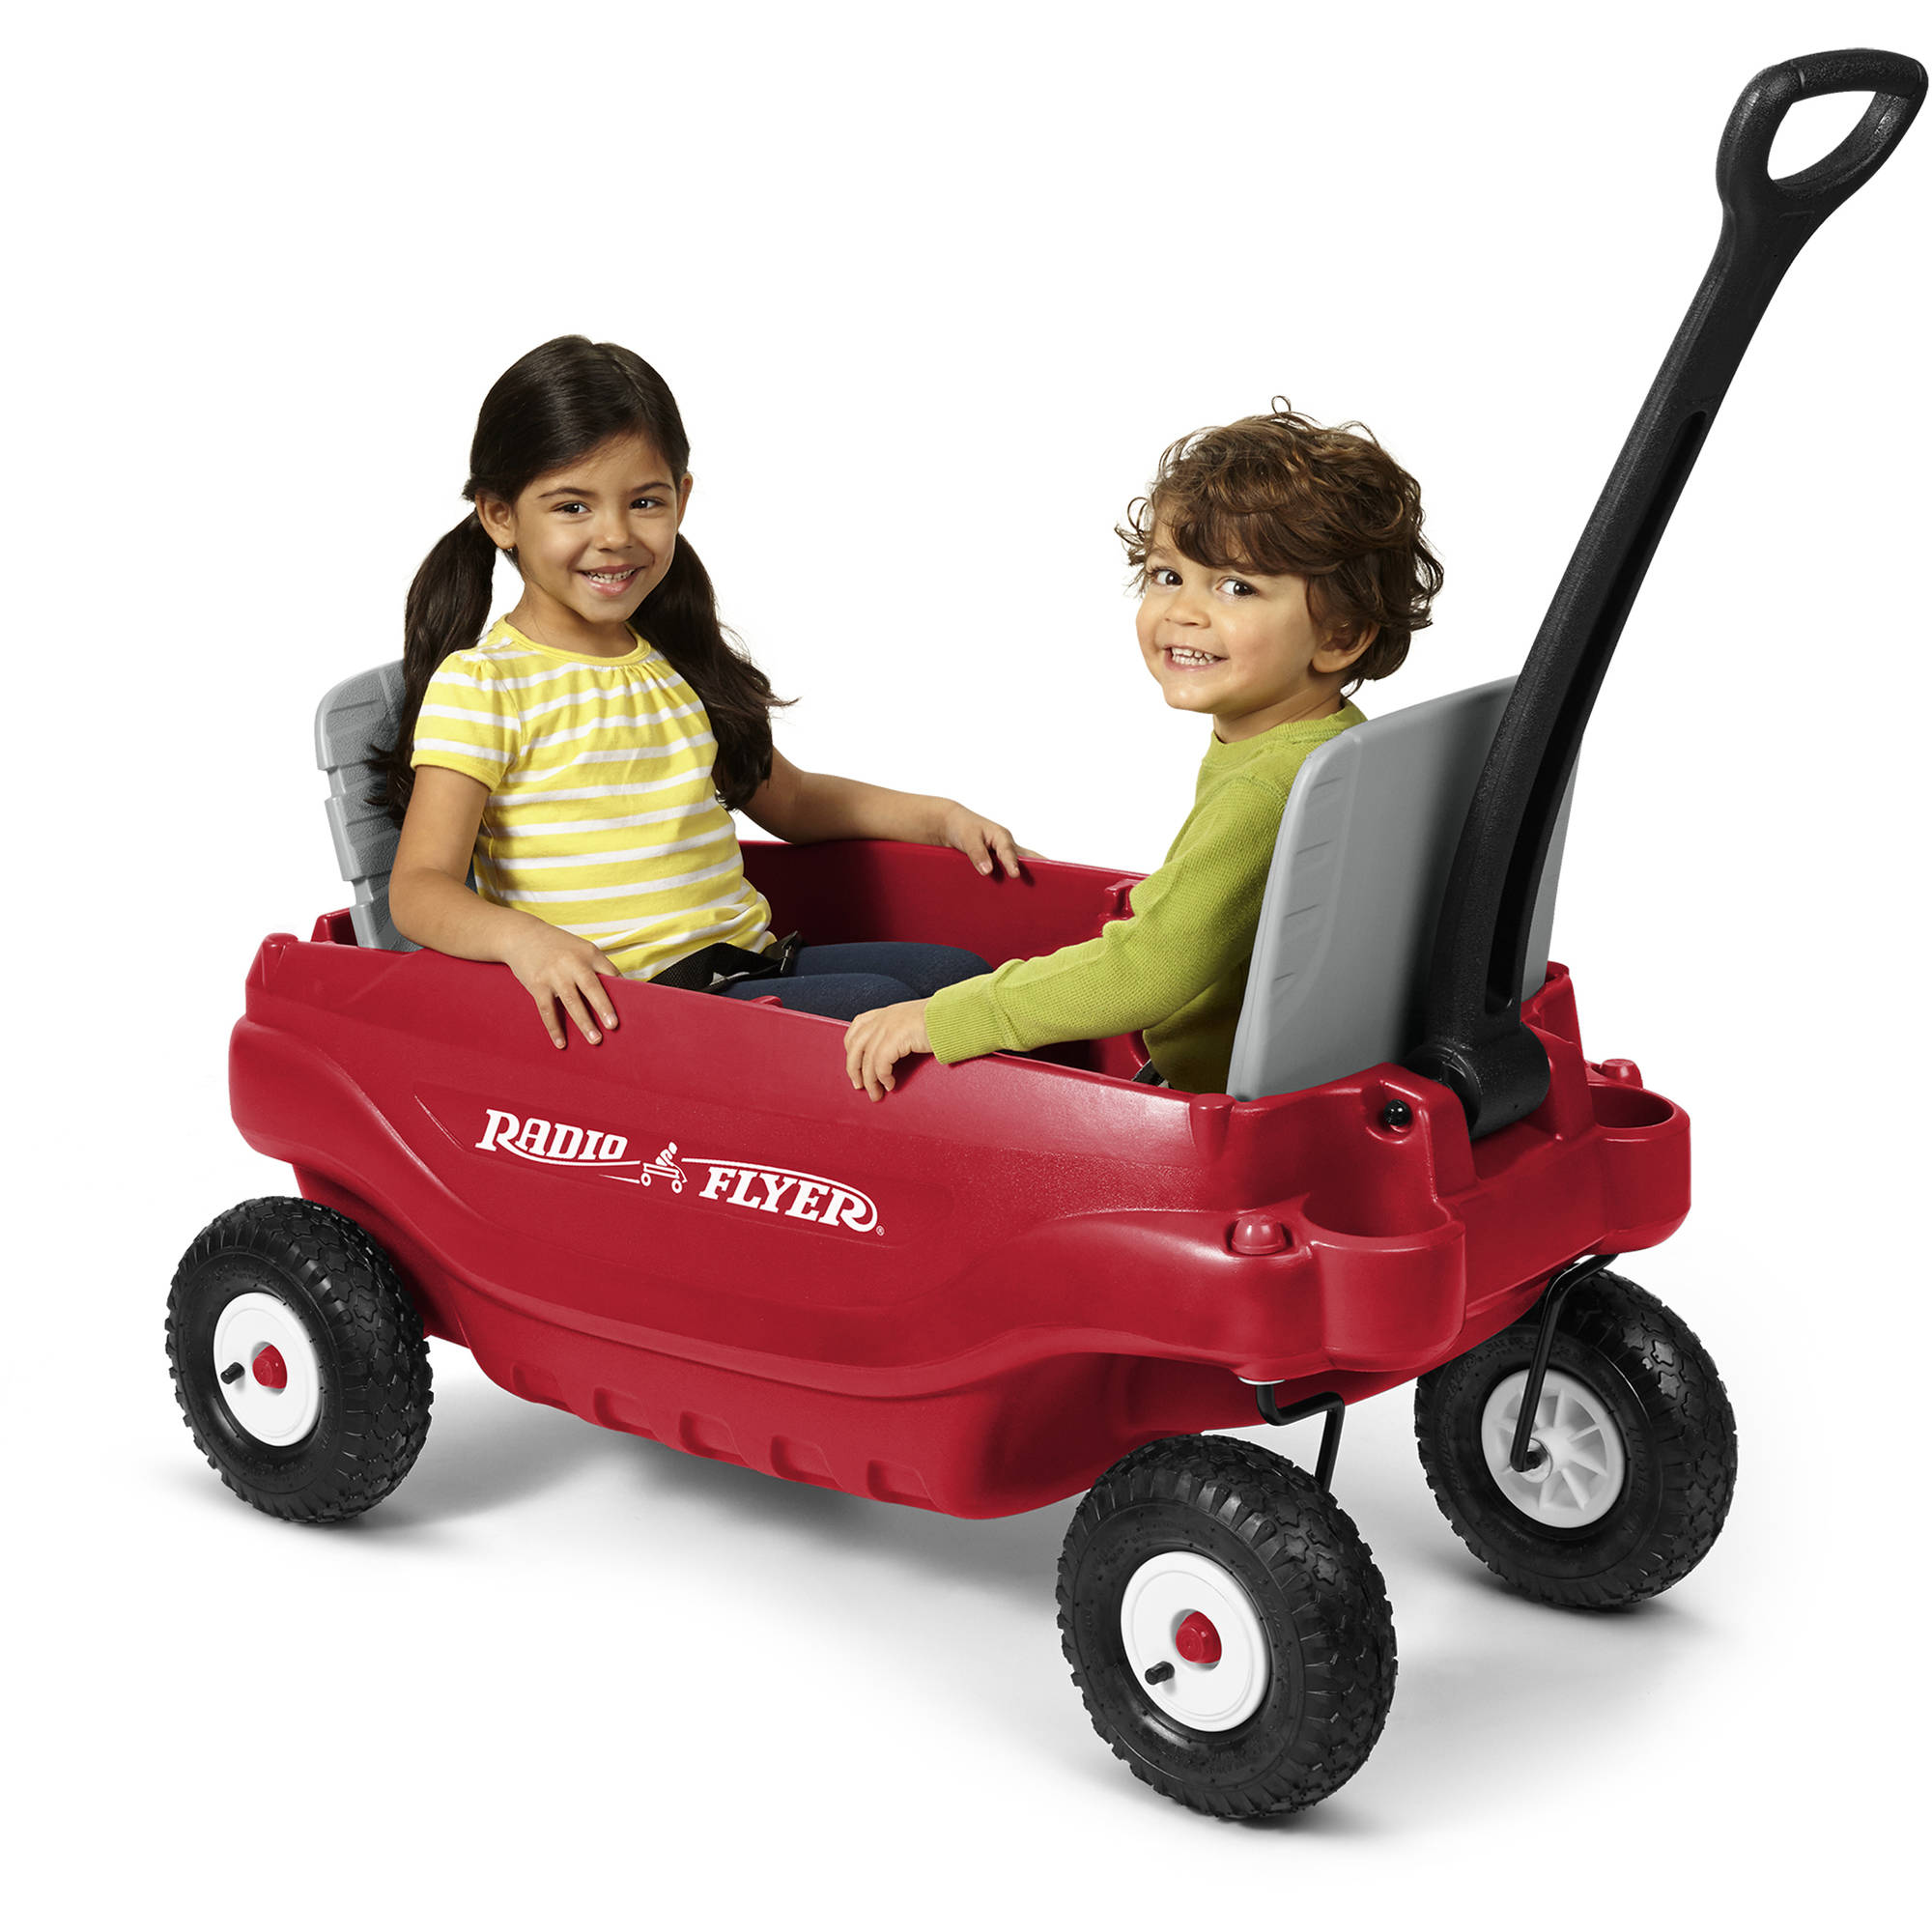 Radio Flyer All Terrain 5-in-1 Wagon